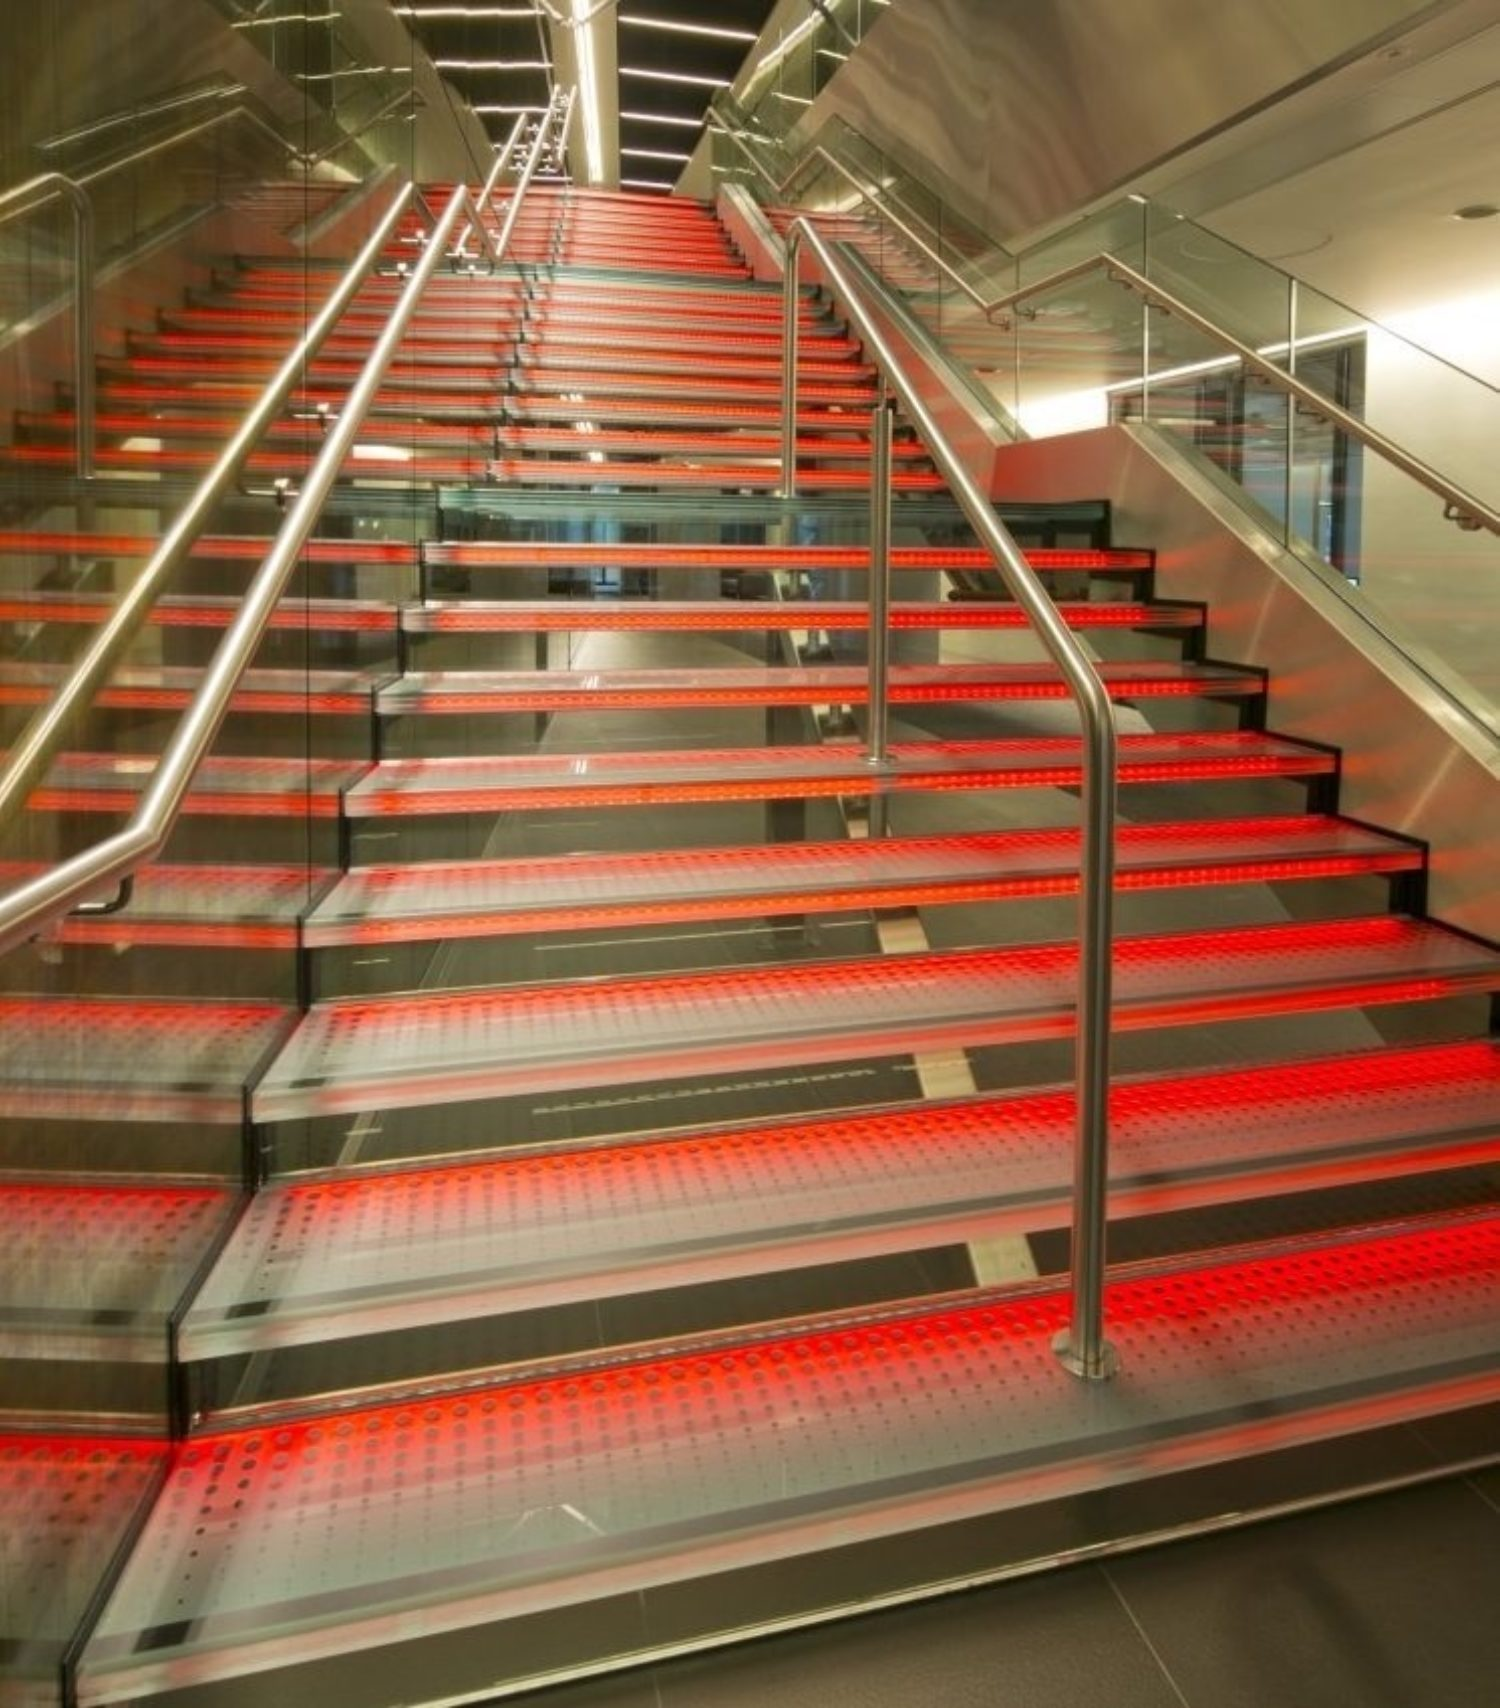 Aon staircase lit in red